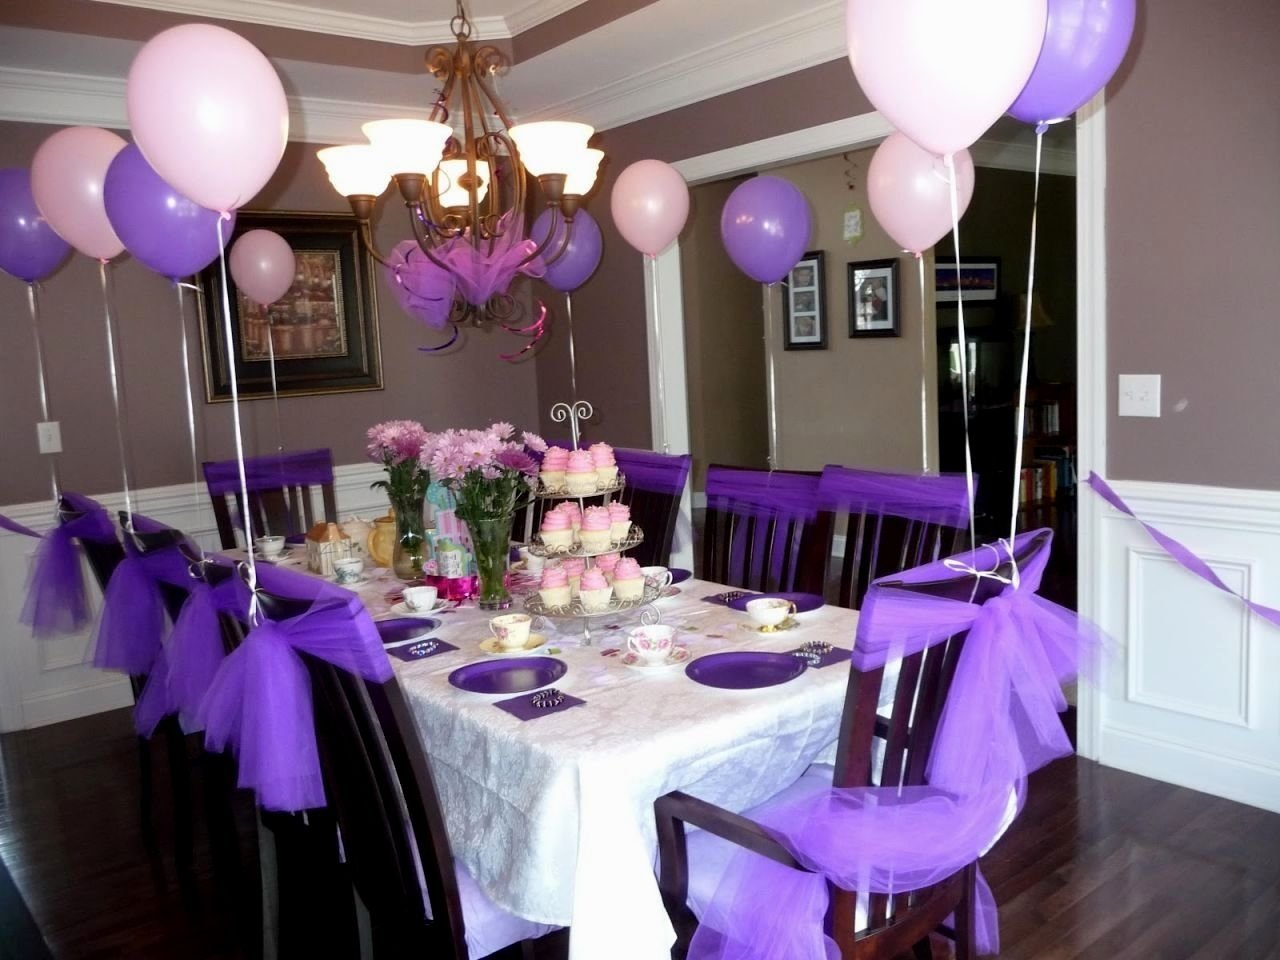 10 Attractive Party Decoration Ideas For Adults party ideas adults theme food college coriver homes 86881 2020